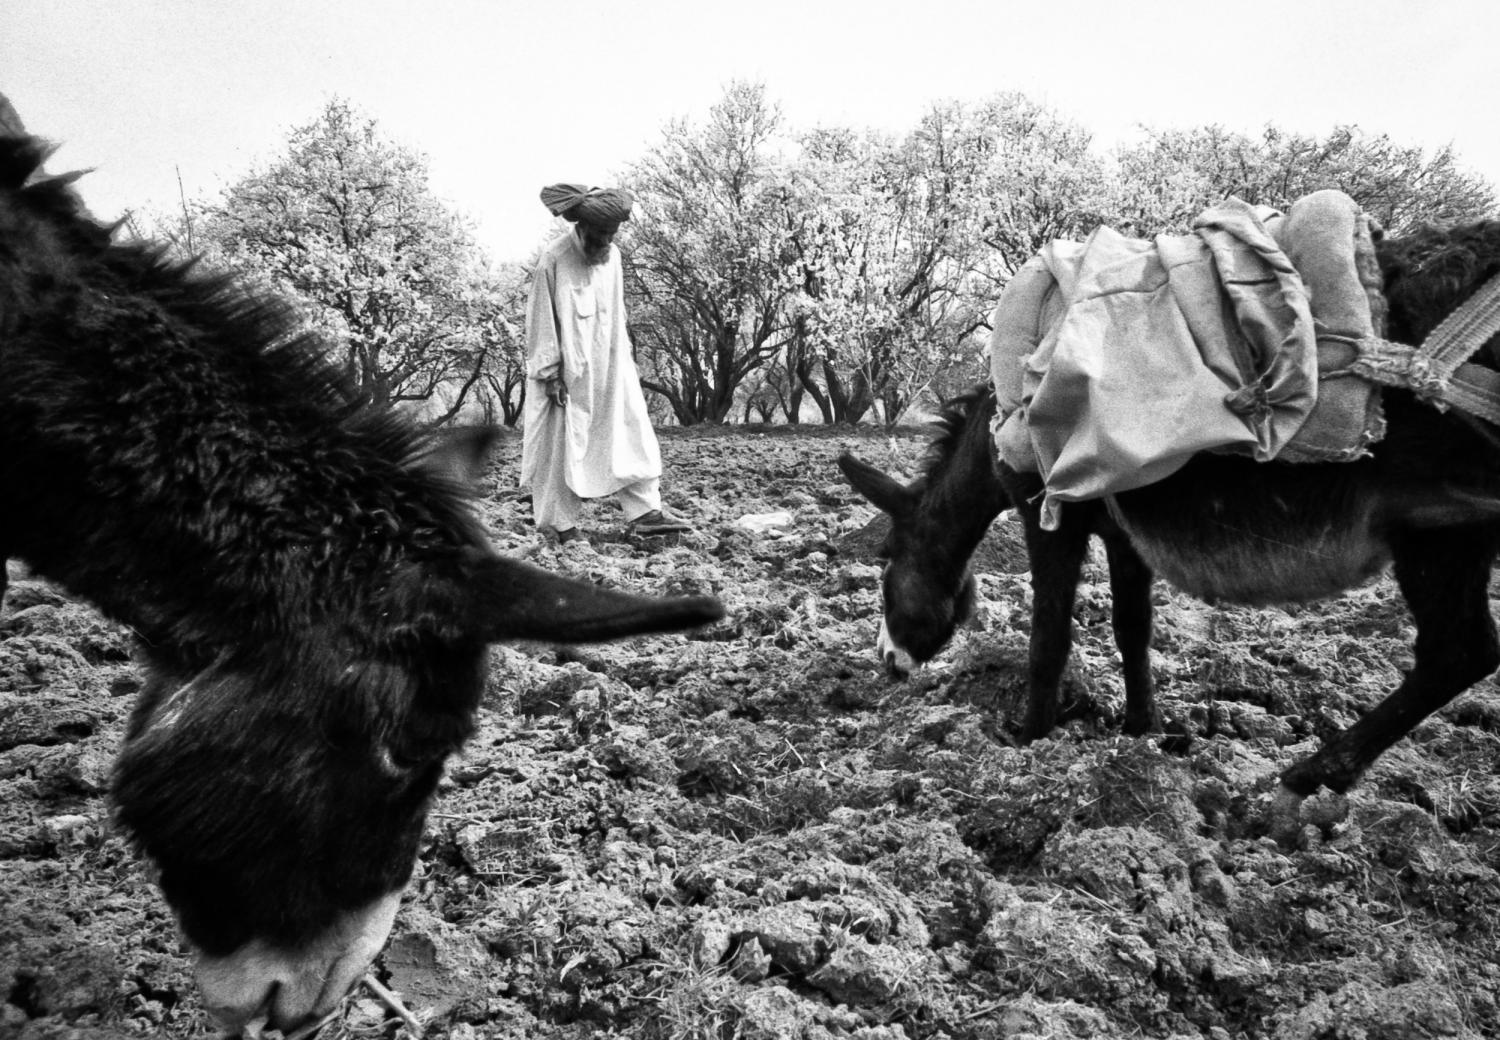 Farmer with Donkeys